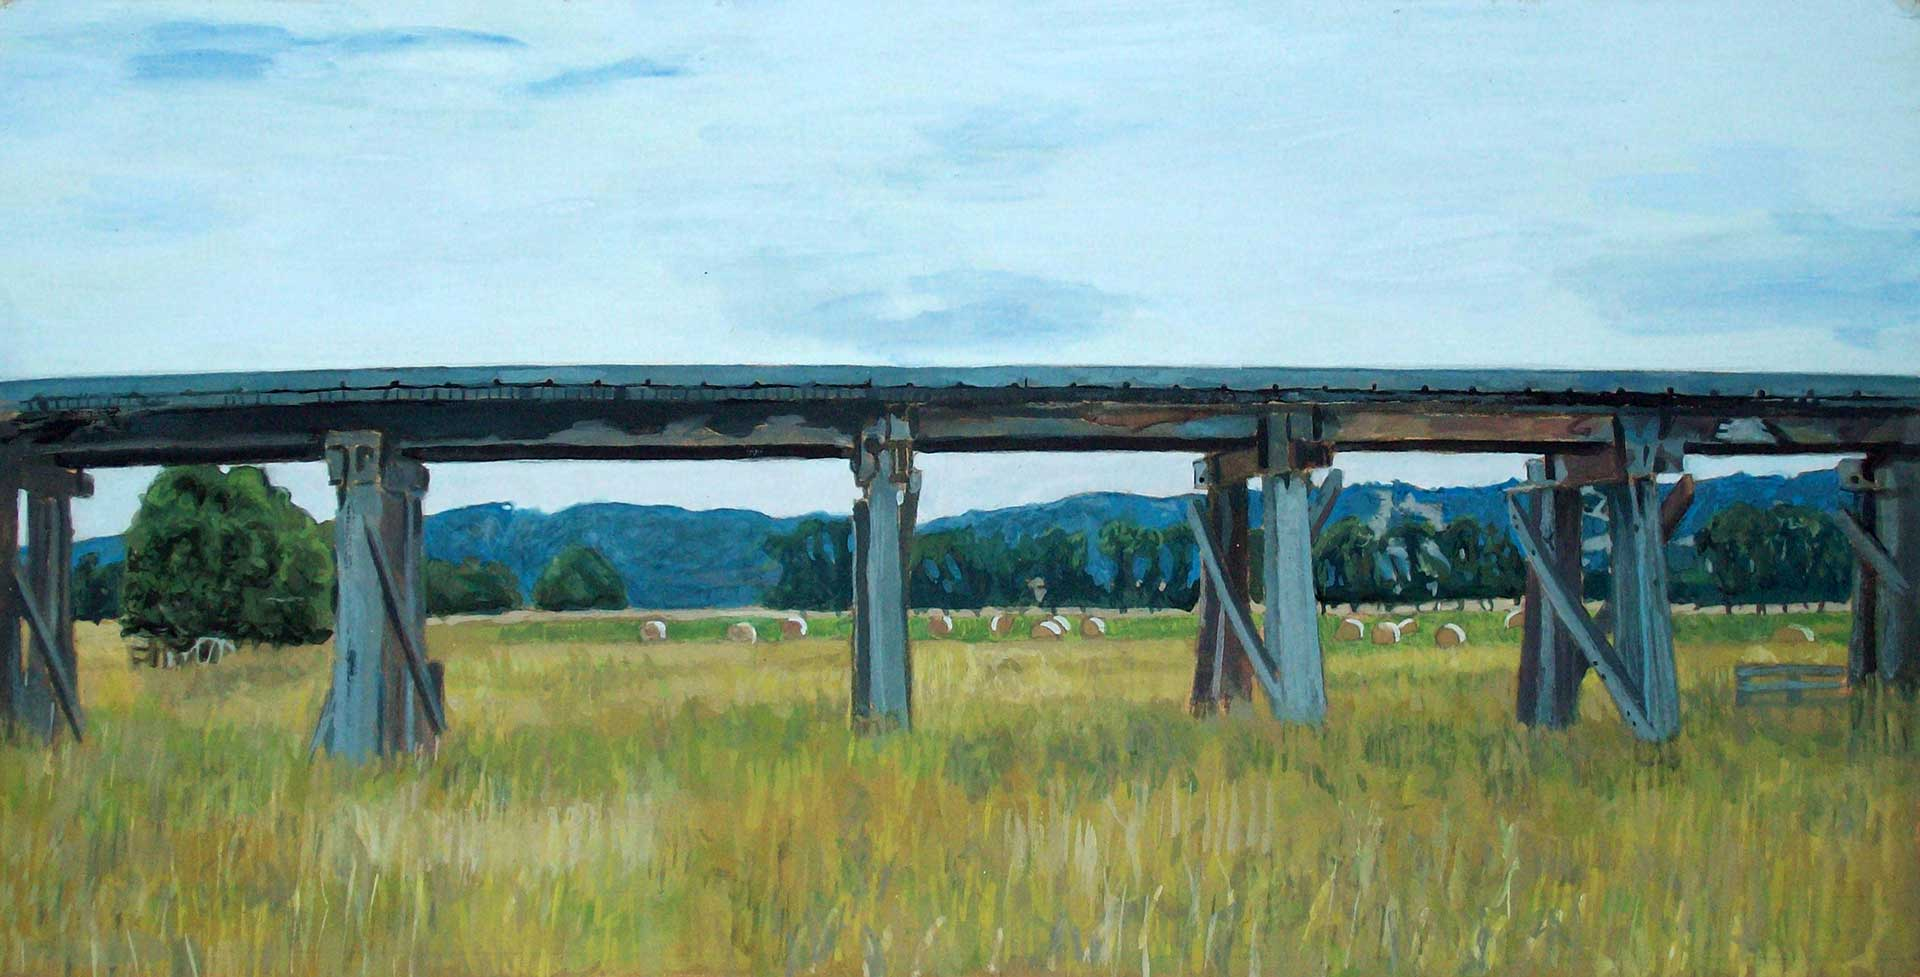 Photorealist painting - Railway Trestle Bridge Near Yarra Glen